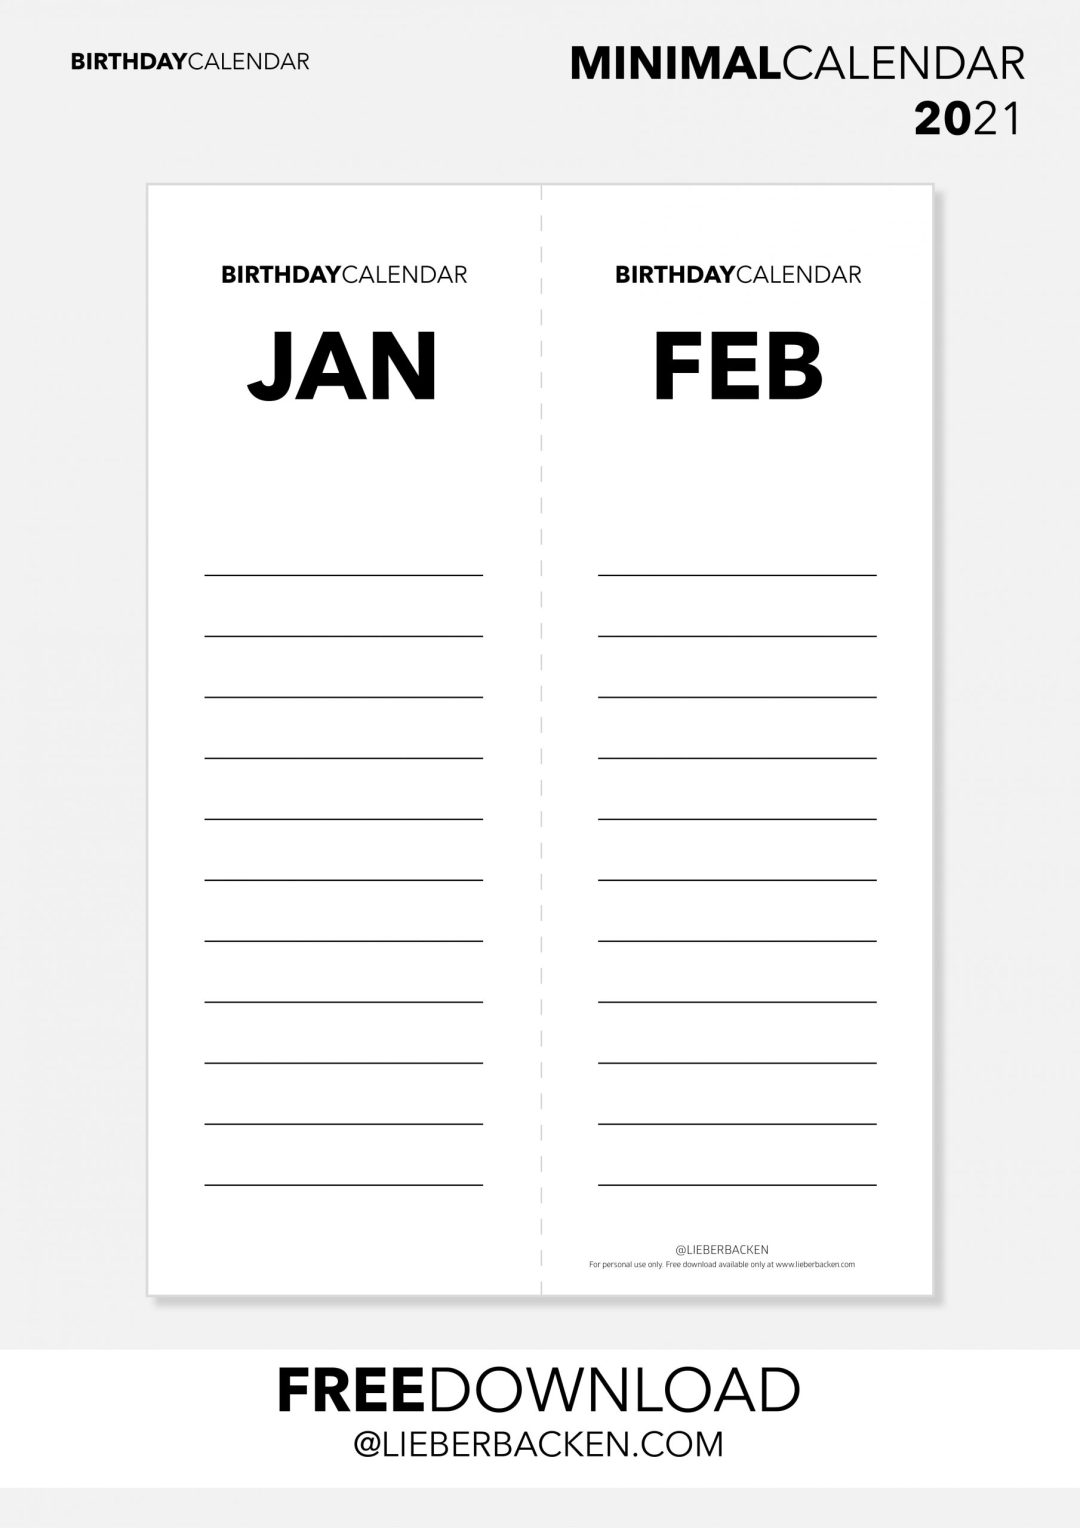 Free Printables: MINIMAL CALENDAR 2021 | Birthday Calender #freedownload